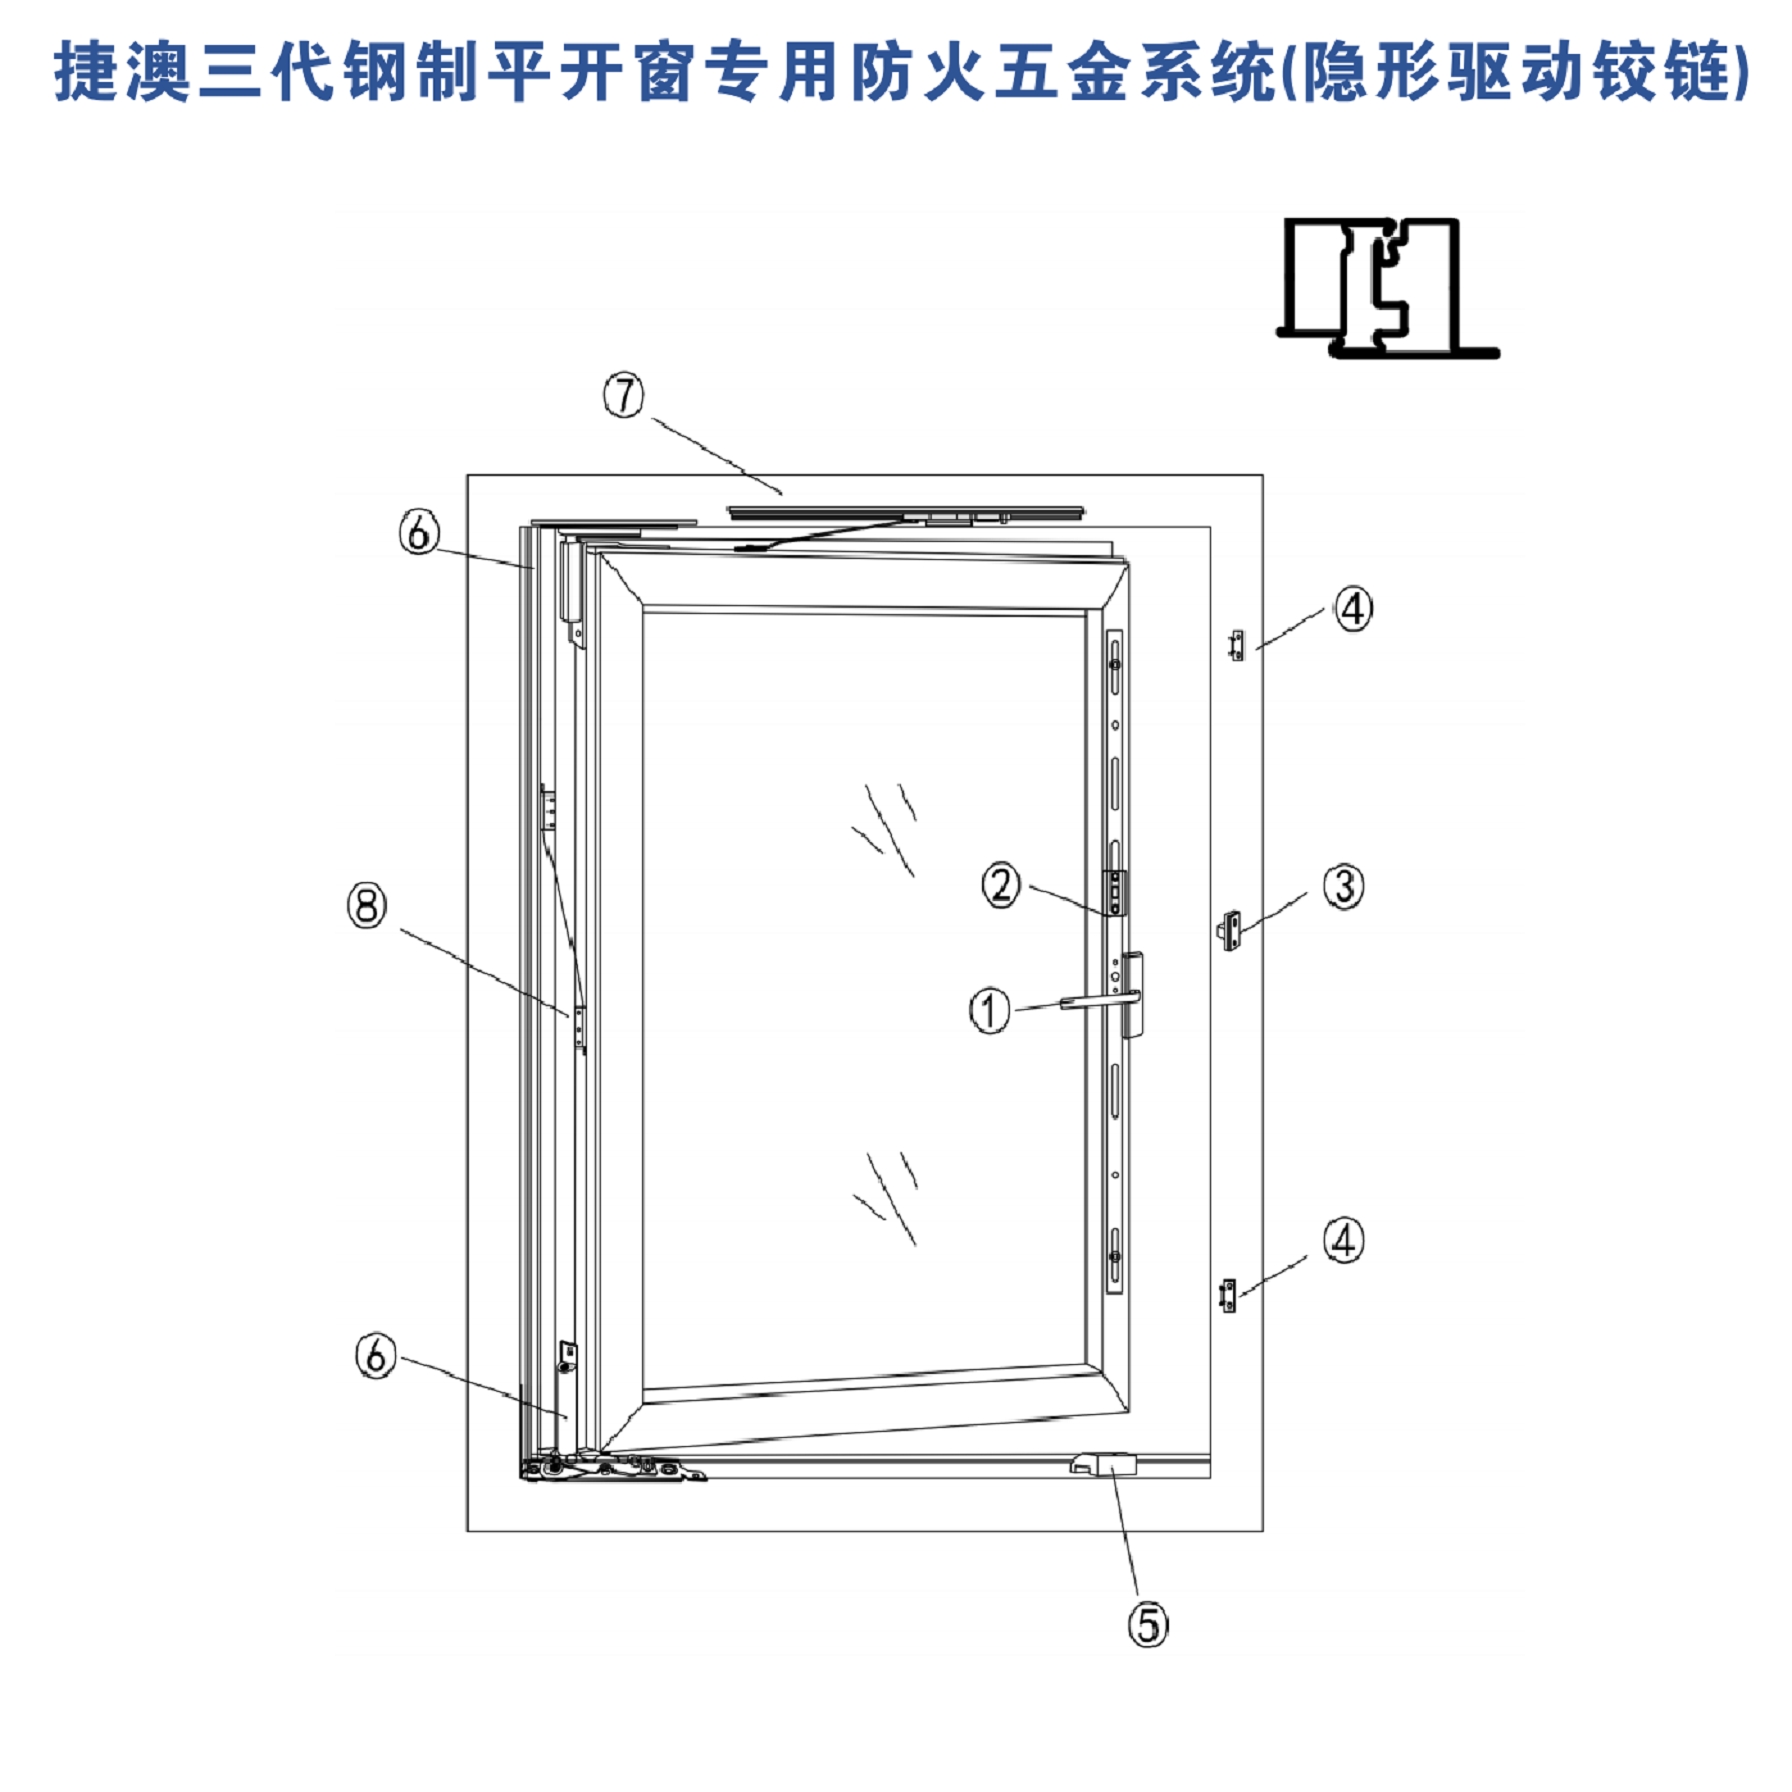 Special fireproof hardware system for Jieao steel casement window (invisible driving hinge)